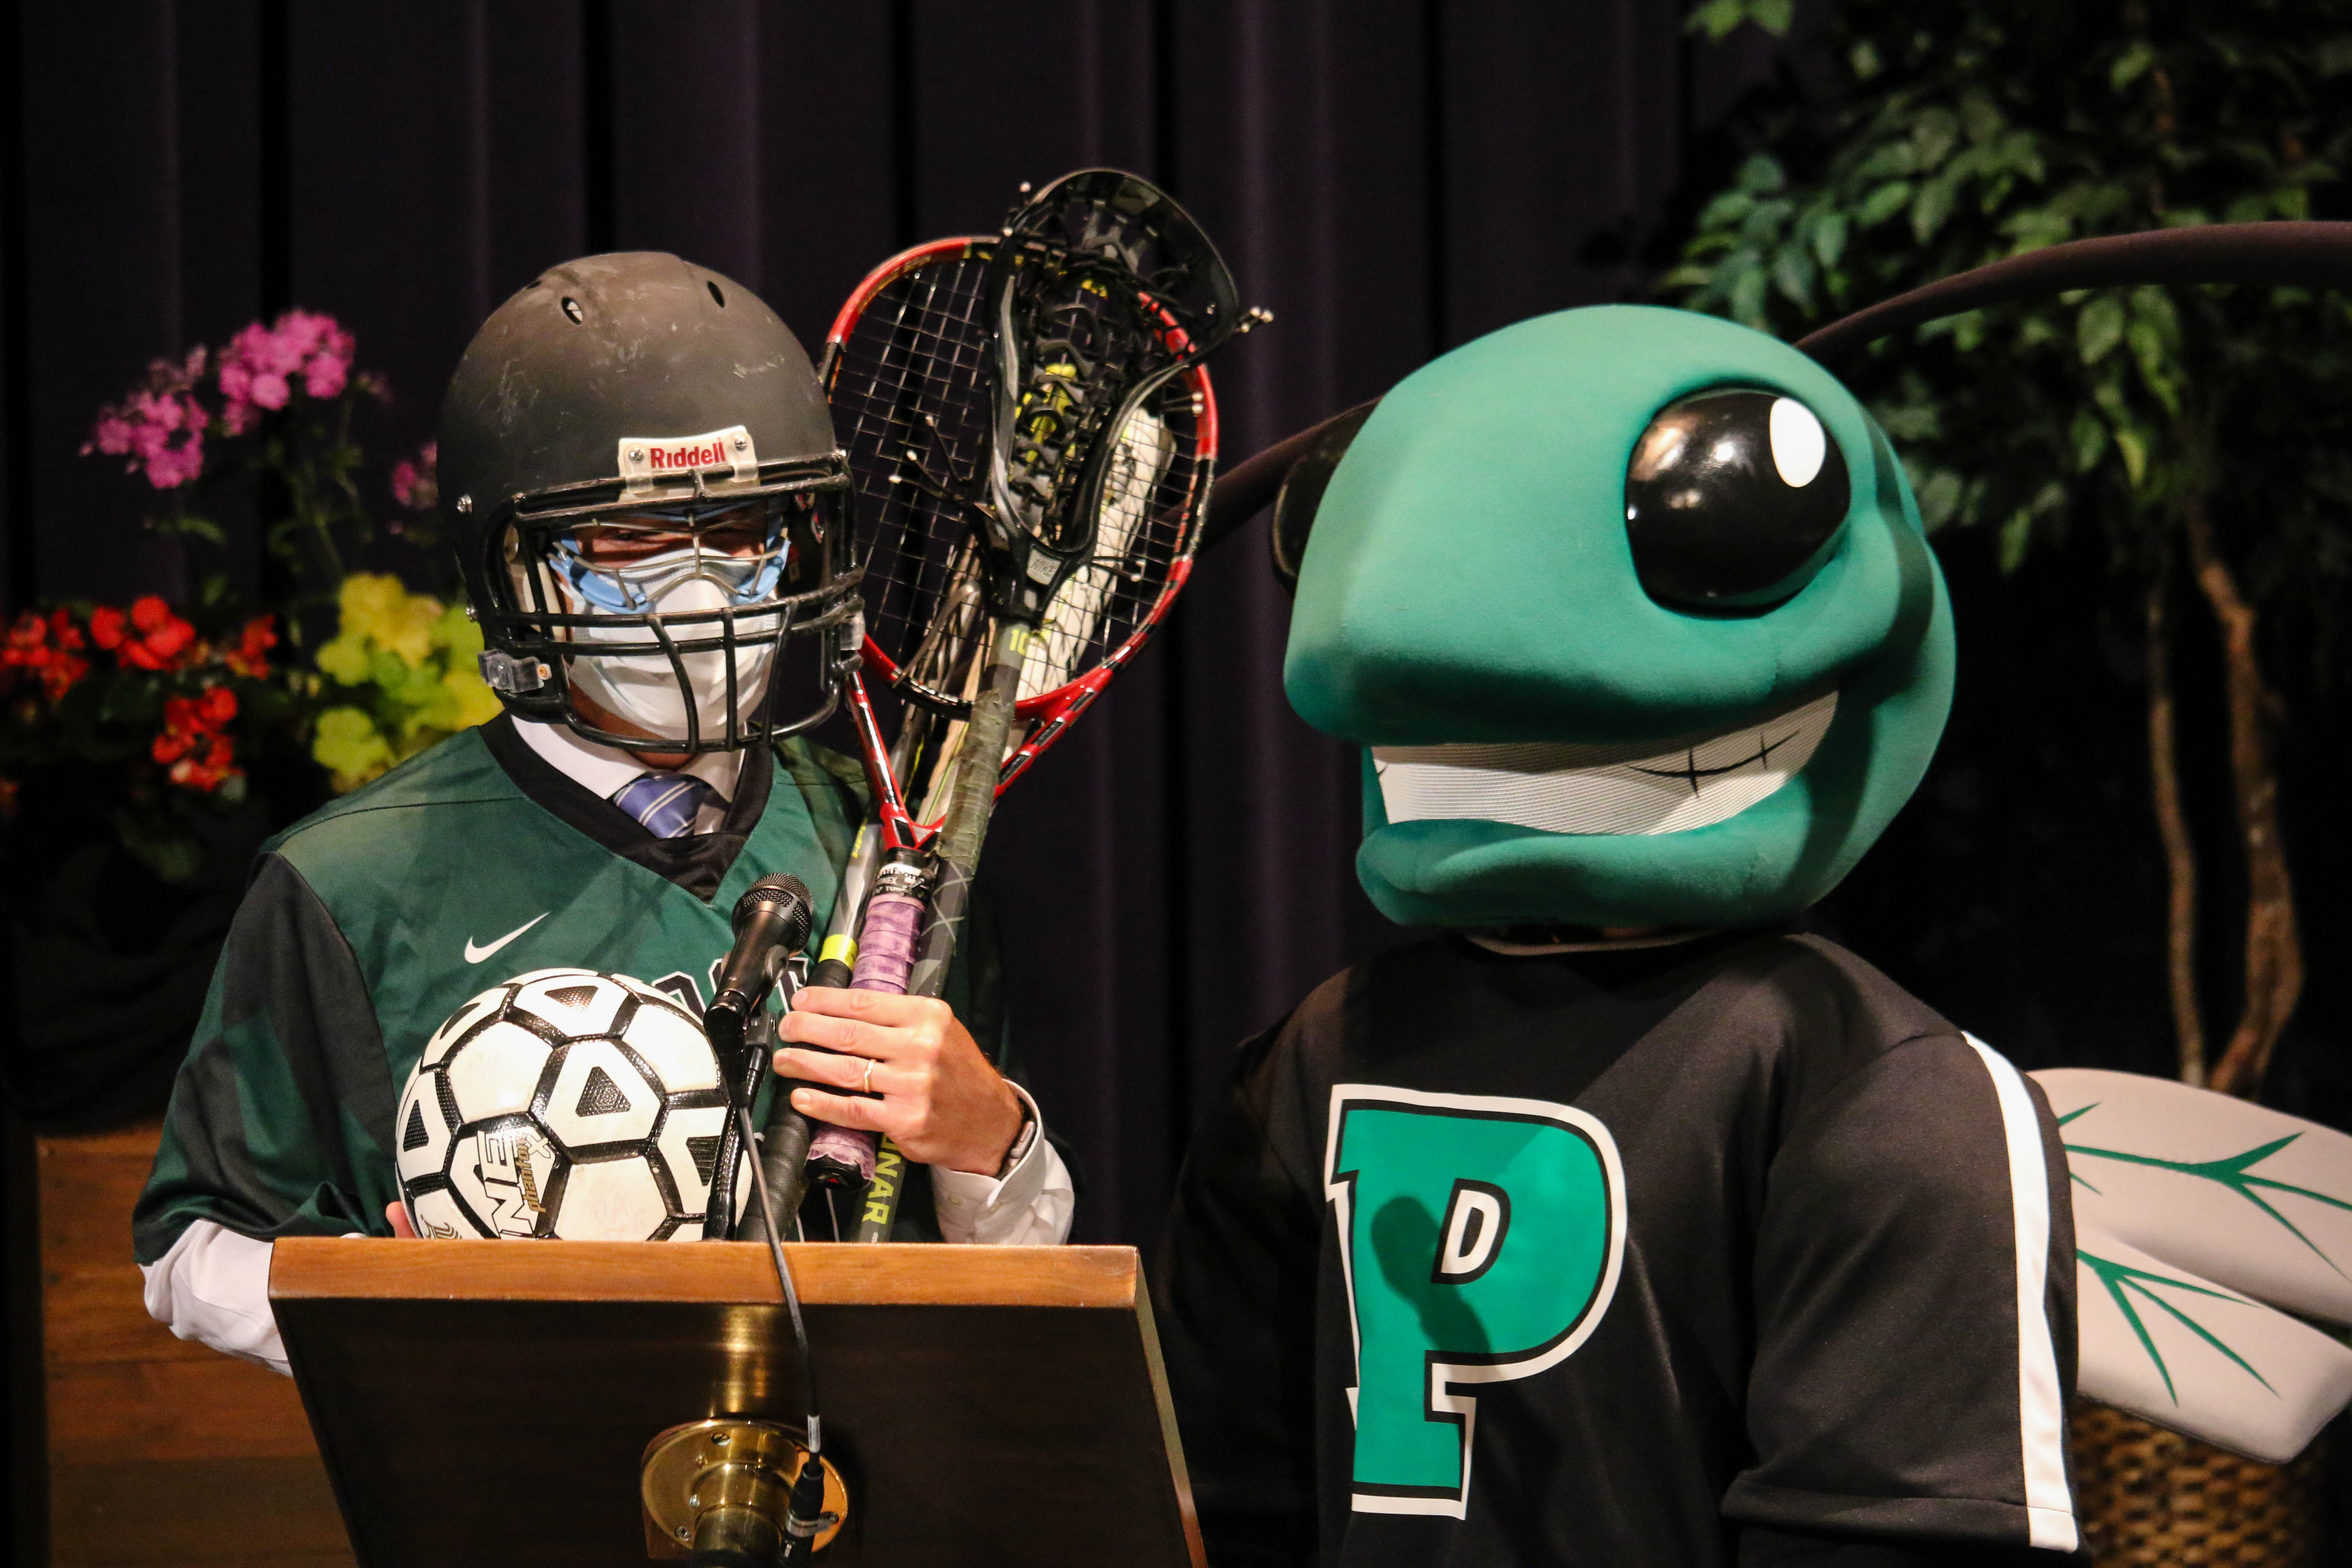 Proctor Academy Virtual Commencement